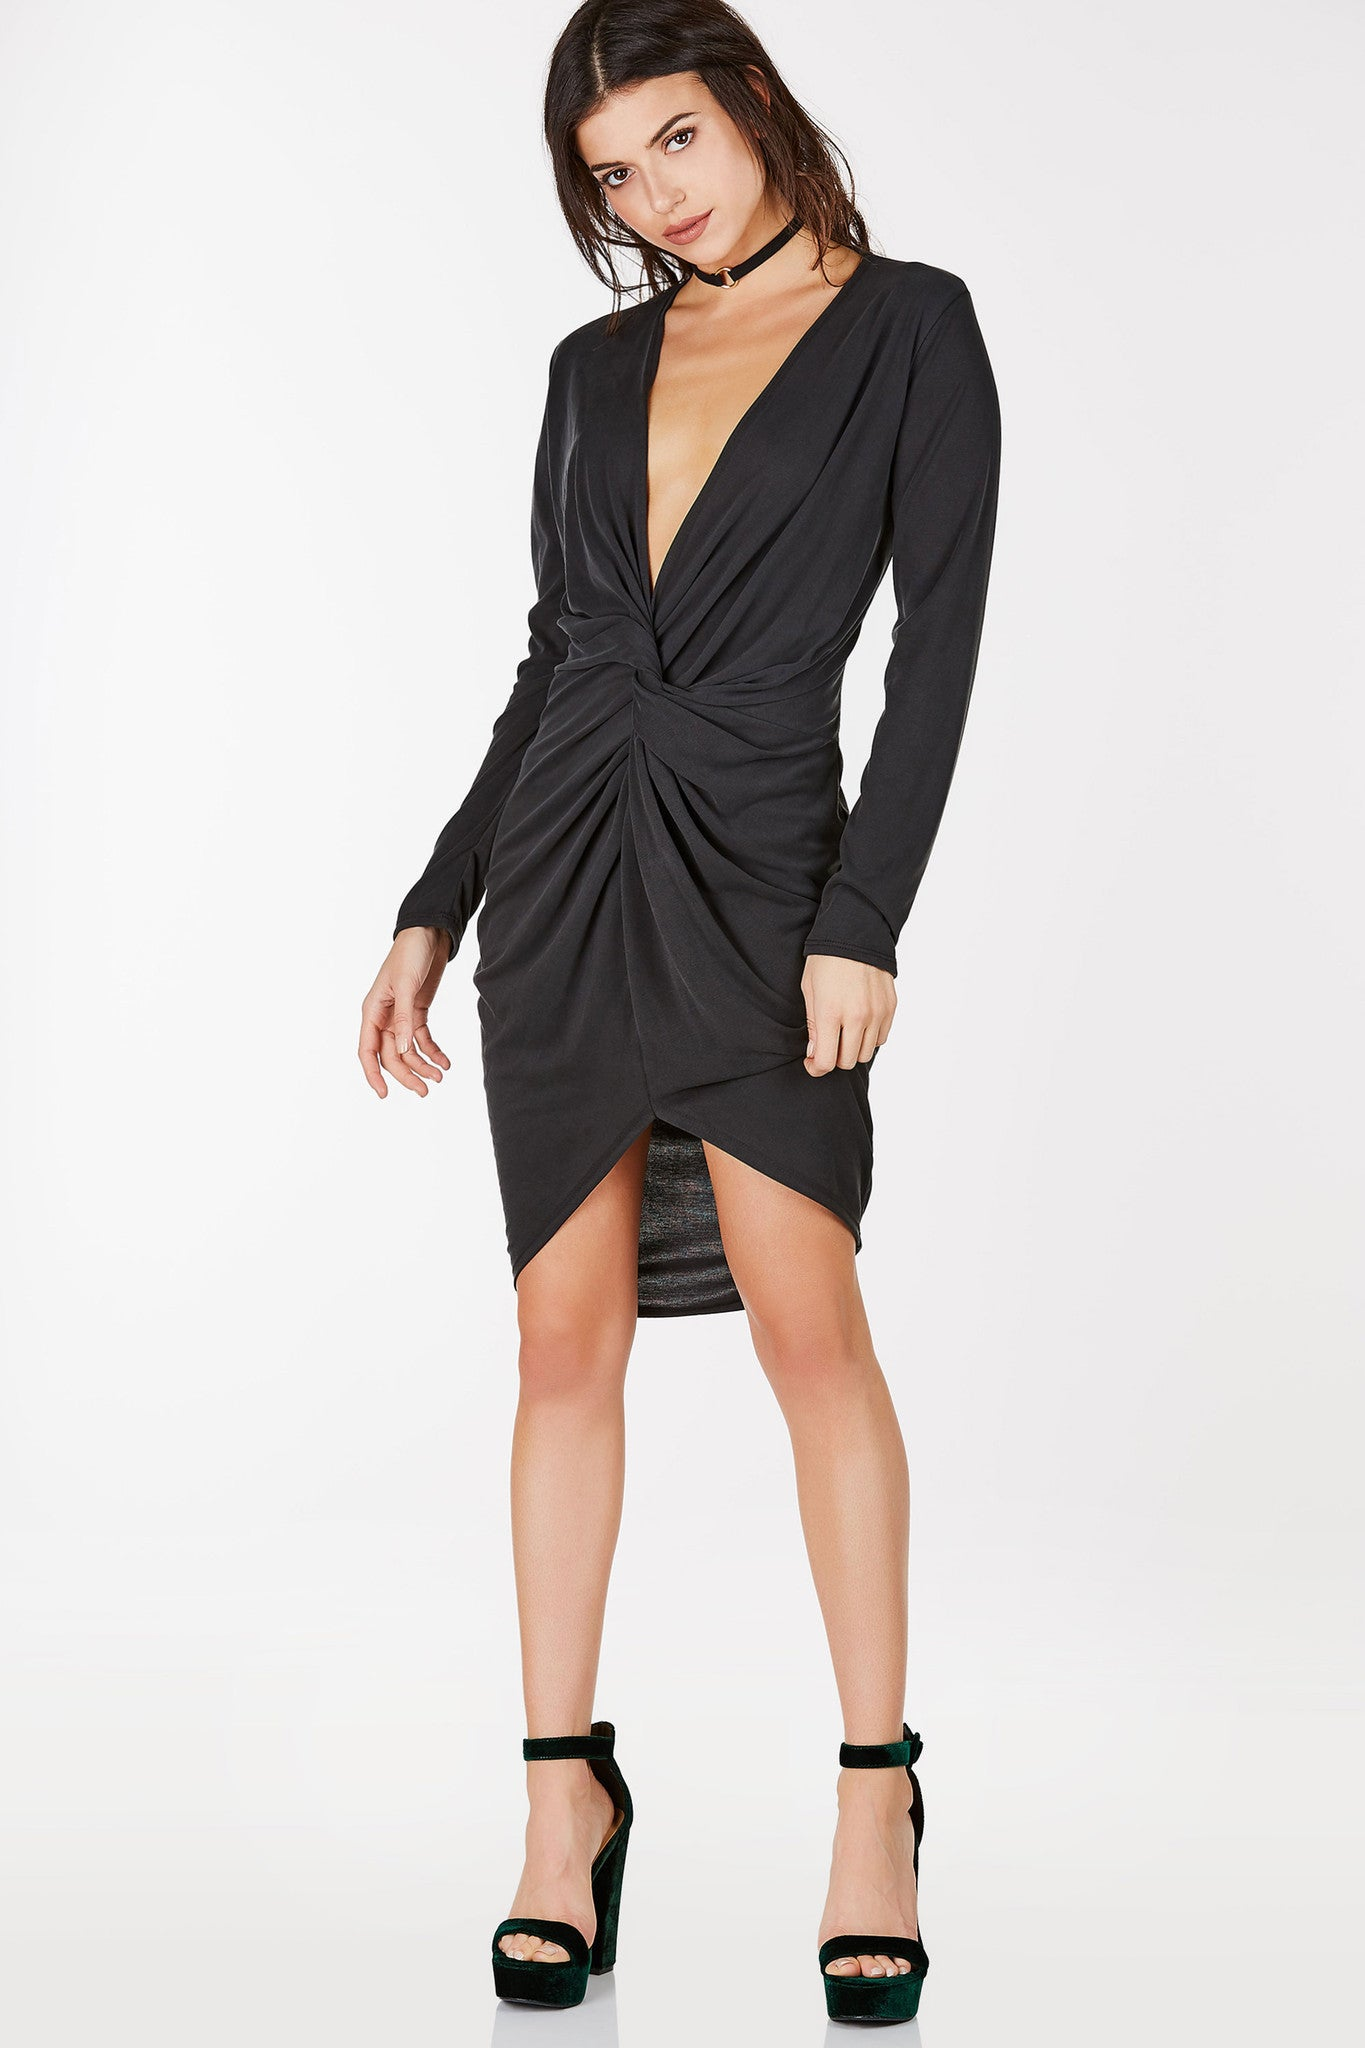 Long sleeve midi dress with plunging neckline. Twist detailing at center with hi-low shark bite style hem.